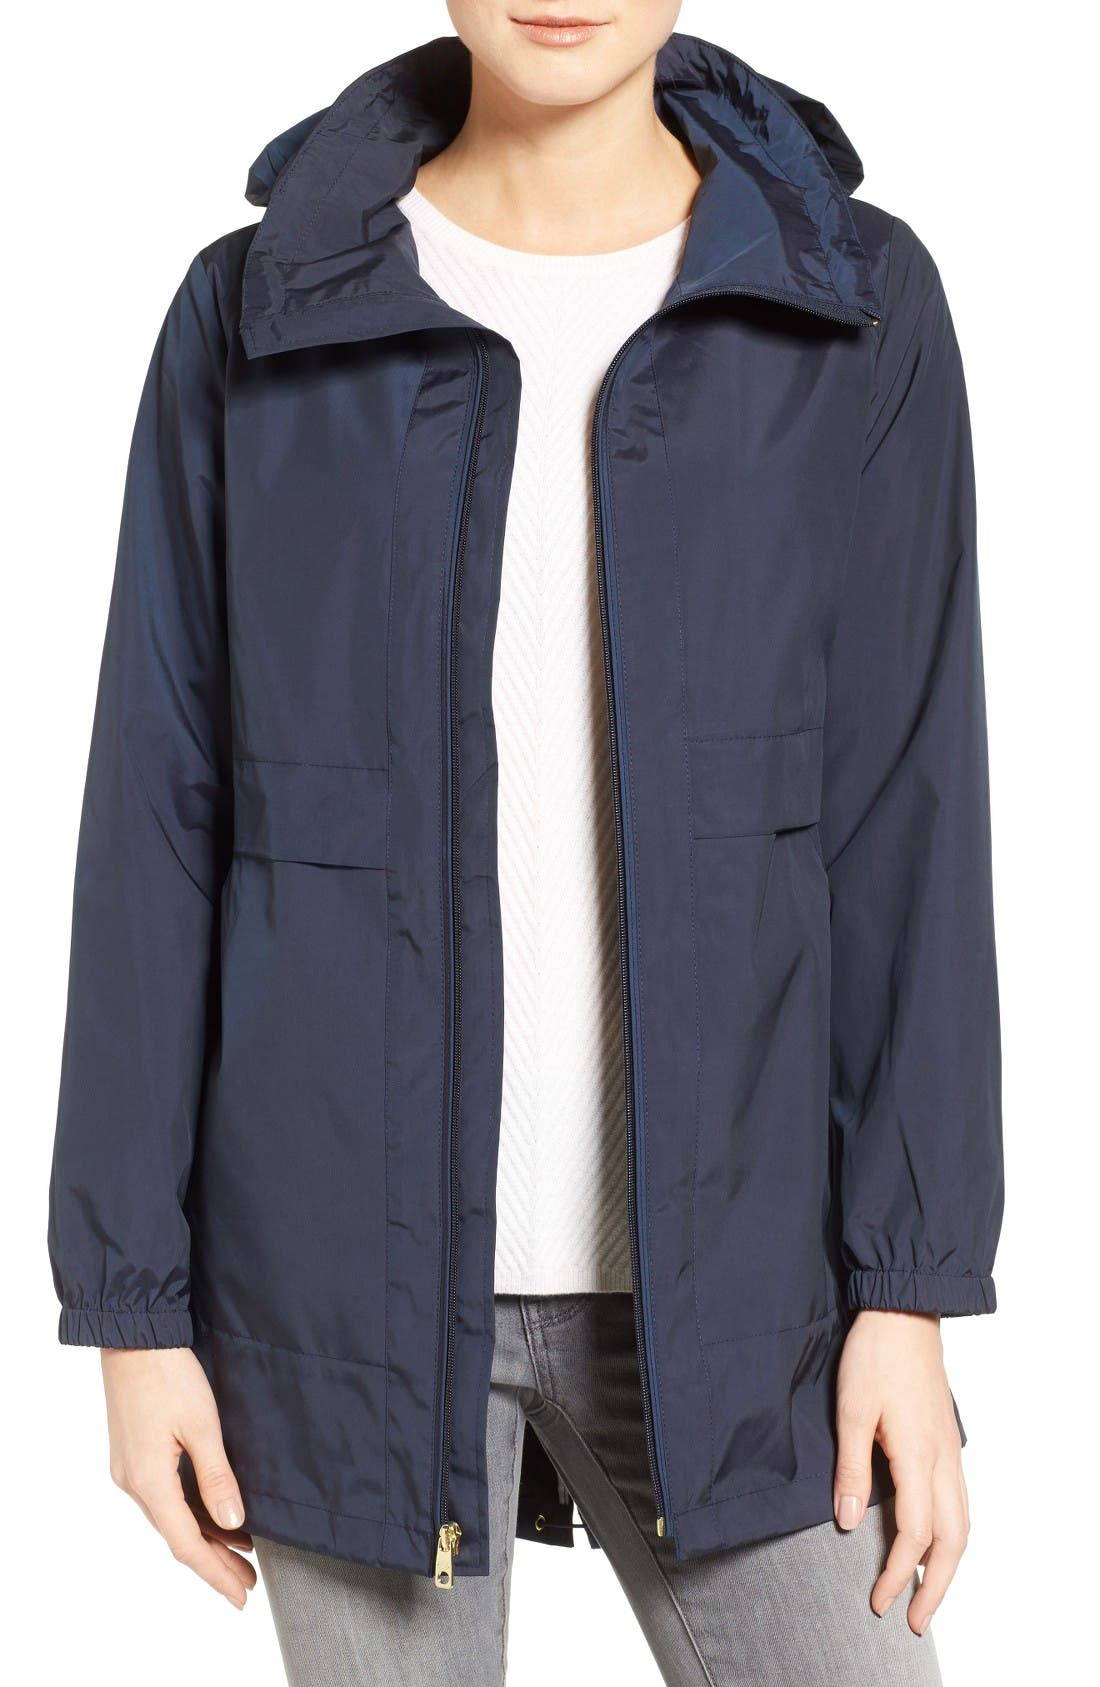 COLE HAAN SIGNATURE Cole Haan Packable Utility Jacket